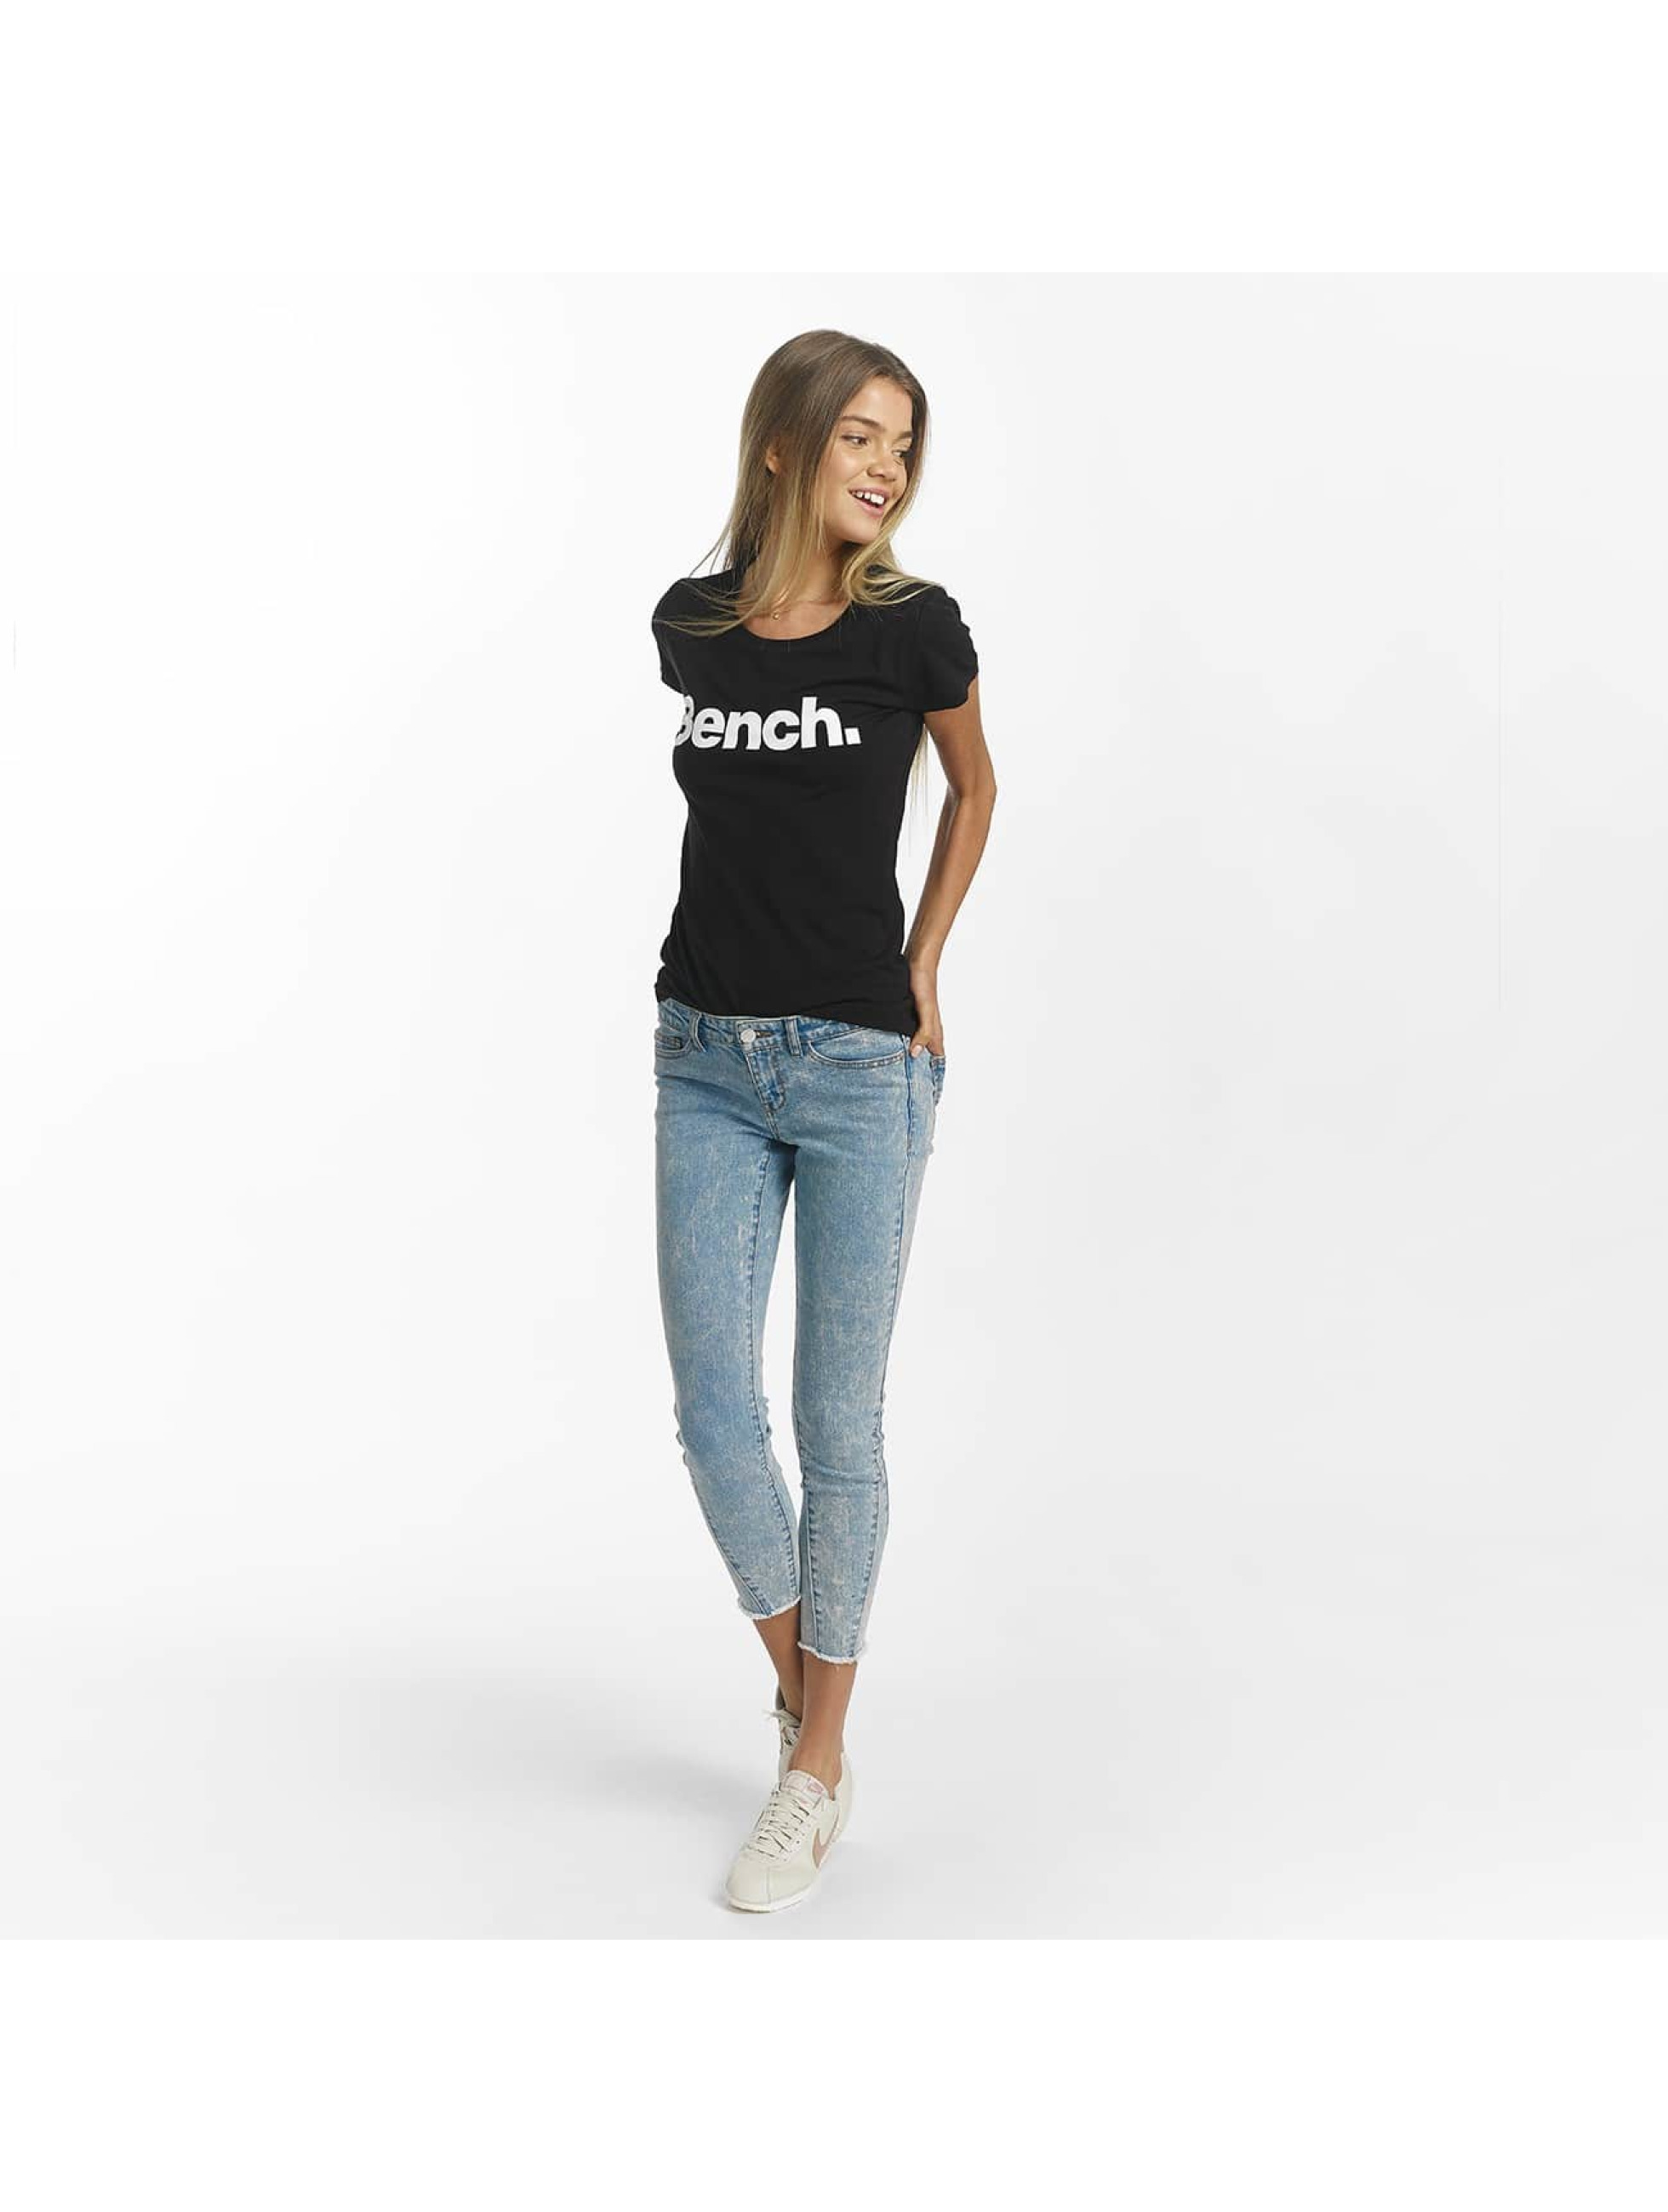 Bench t-shirt Slim Logo zwart